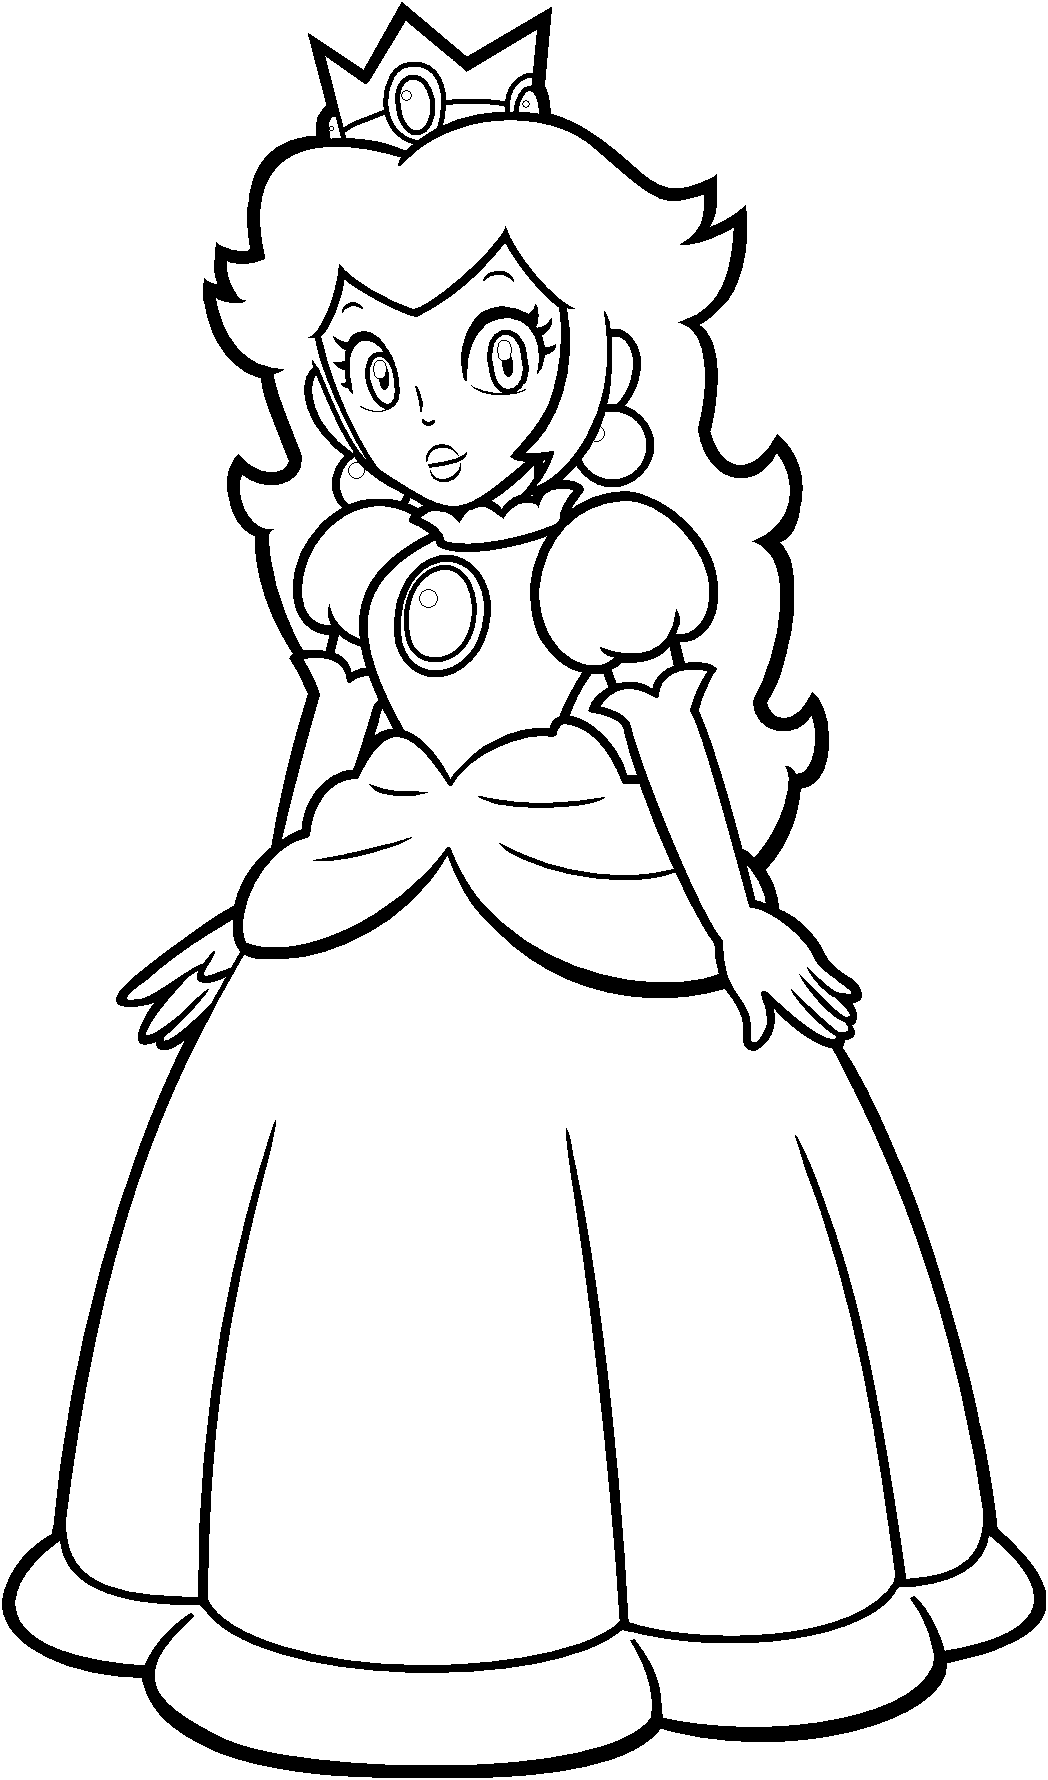 peach coloring pages peach coloring page twisty noodle coloring peach pages